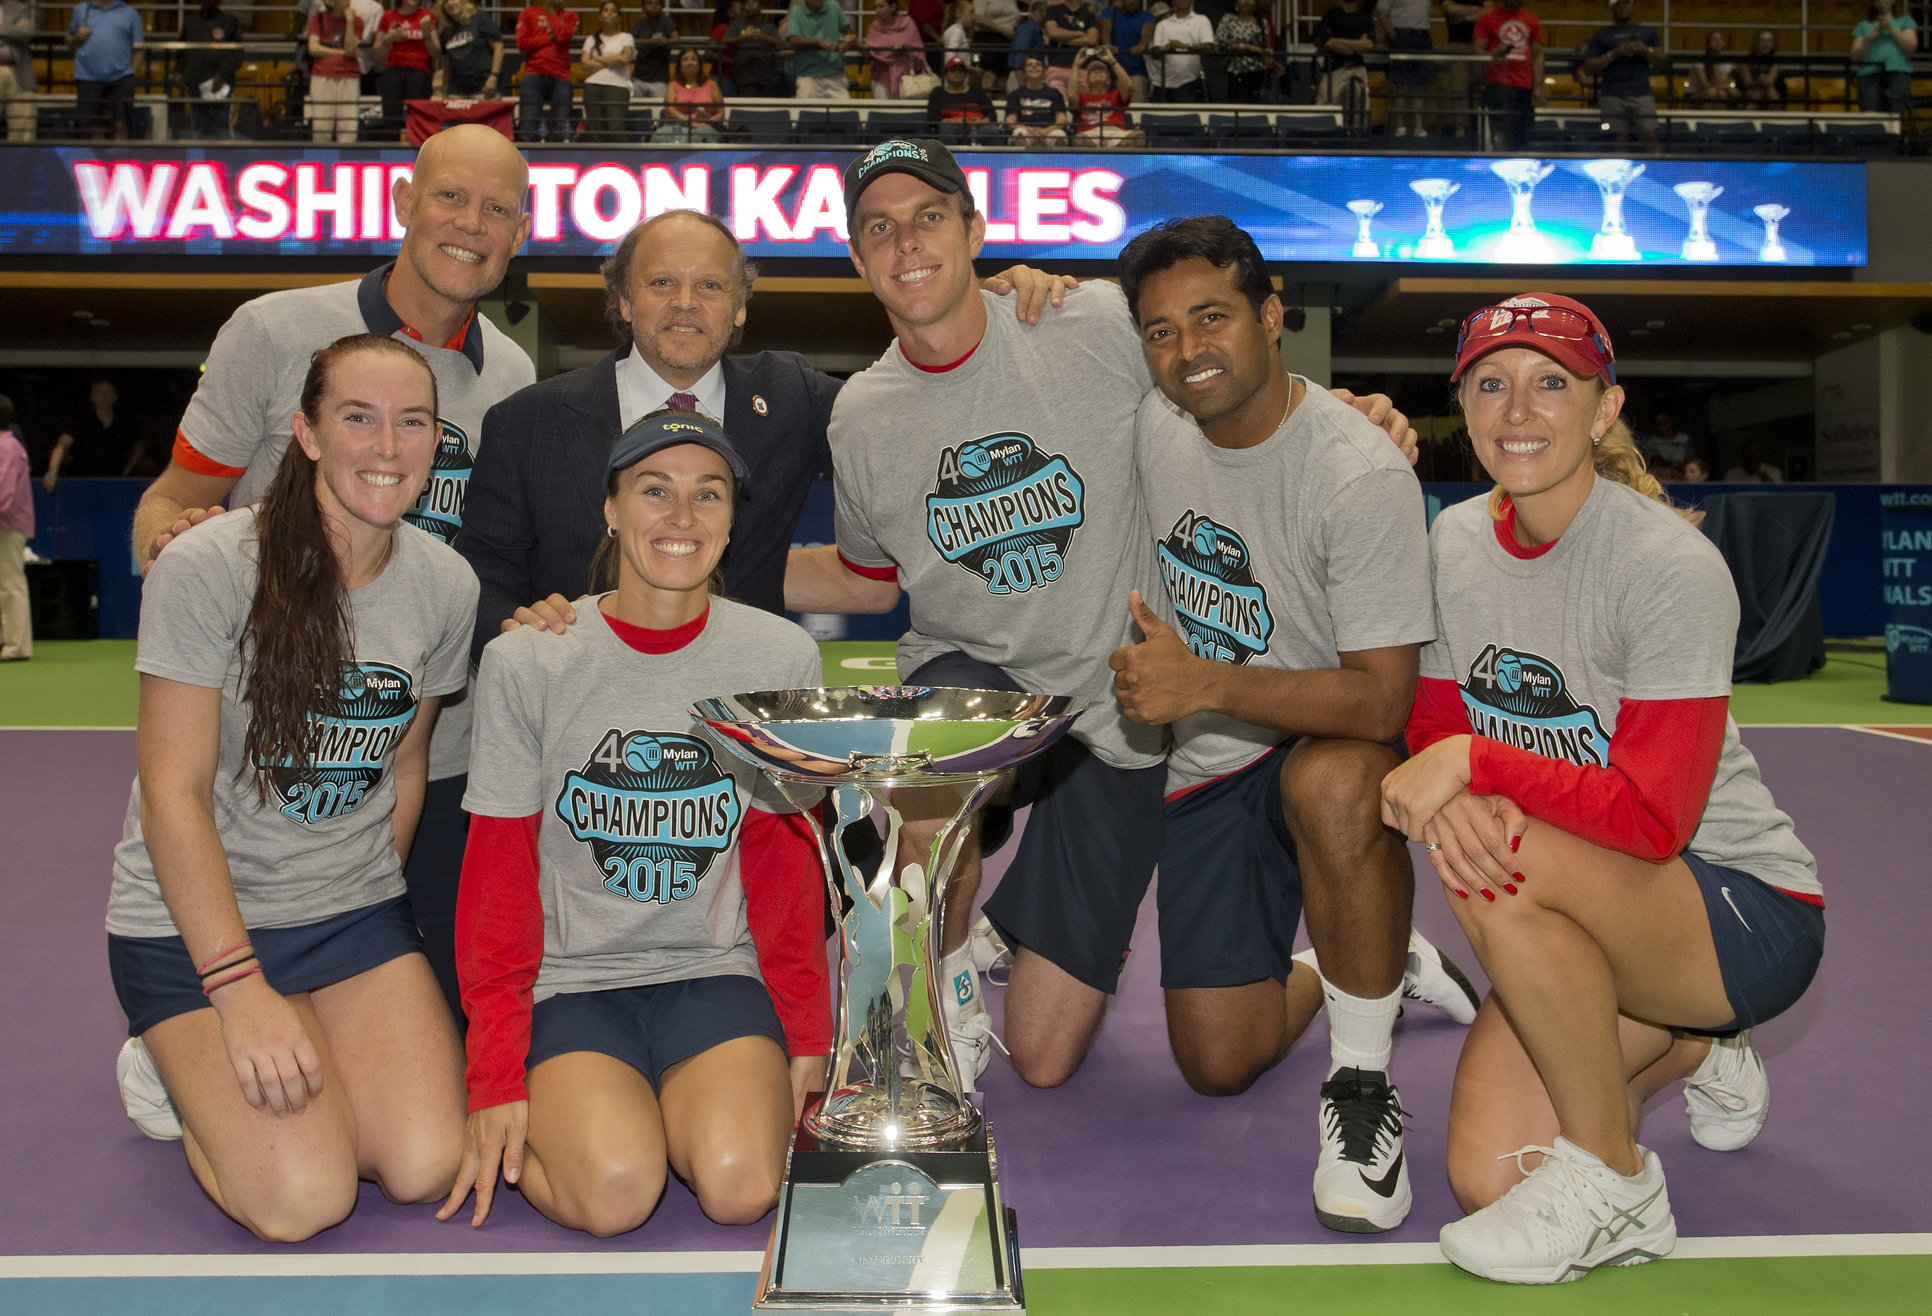 Washington Kastles Win Record Fifth World Team Tennis Title